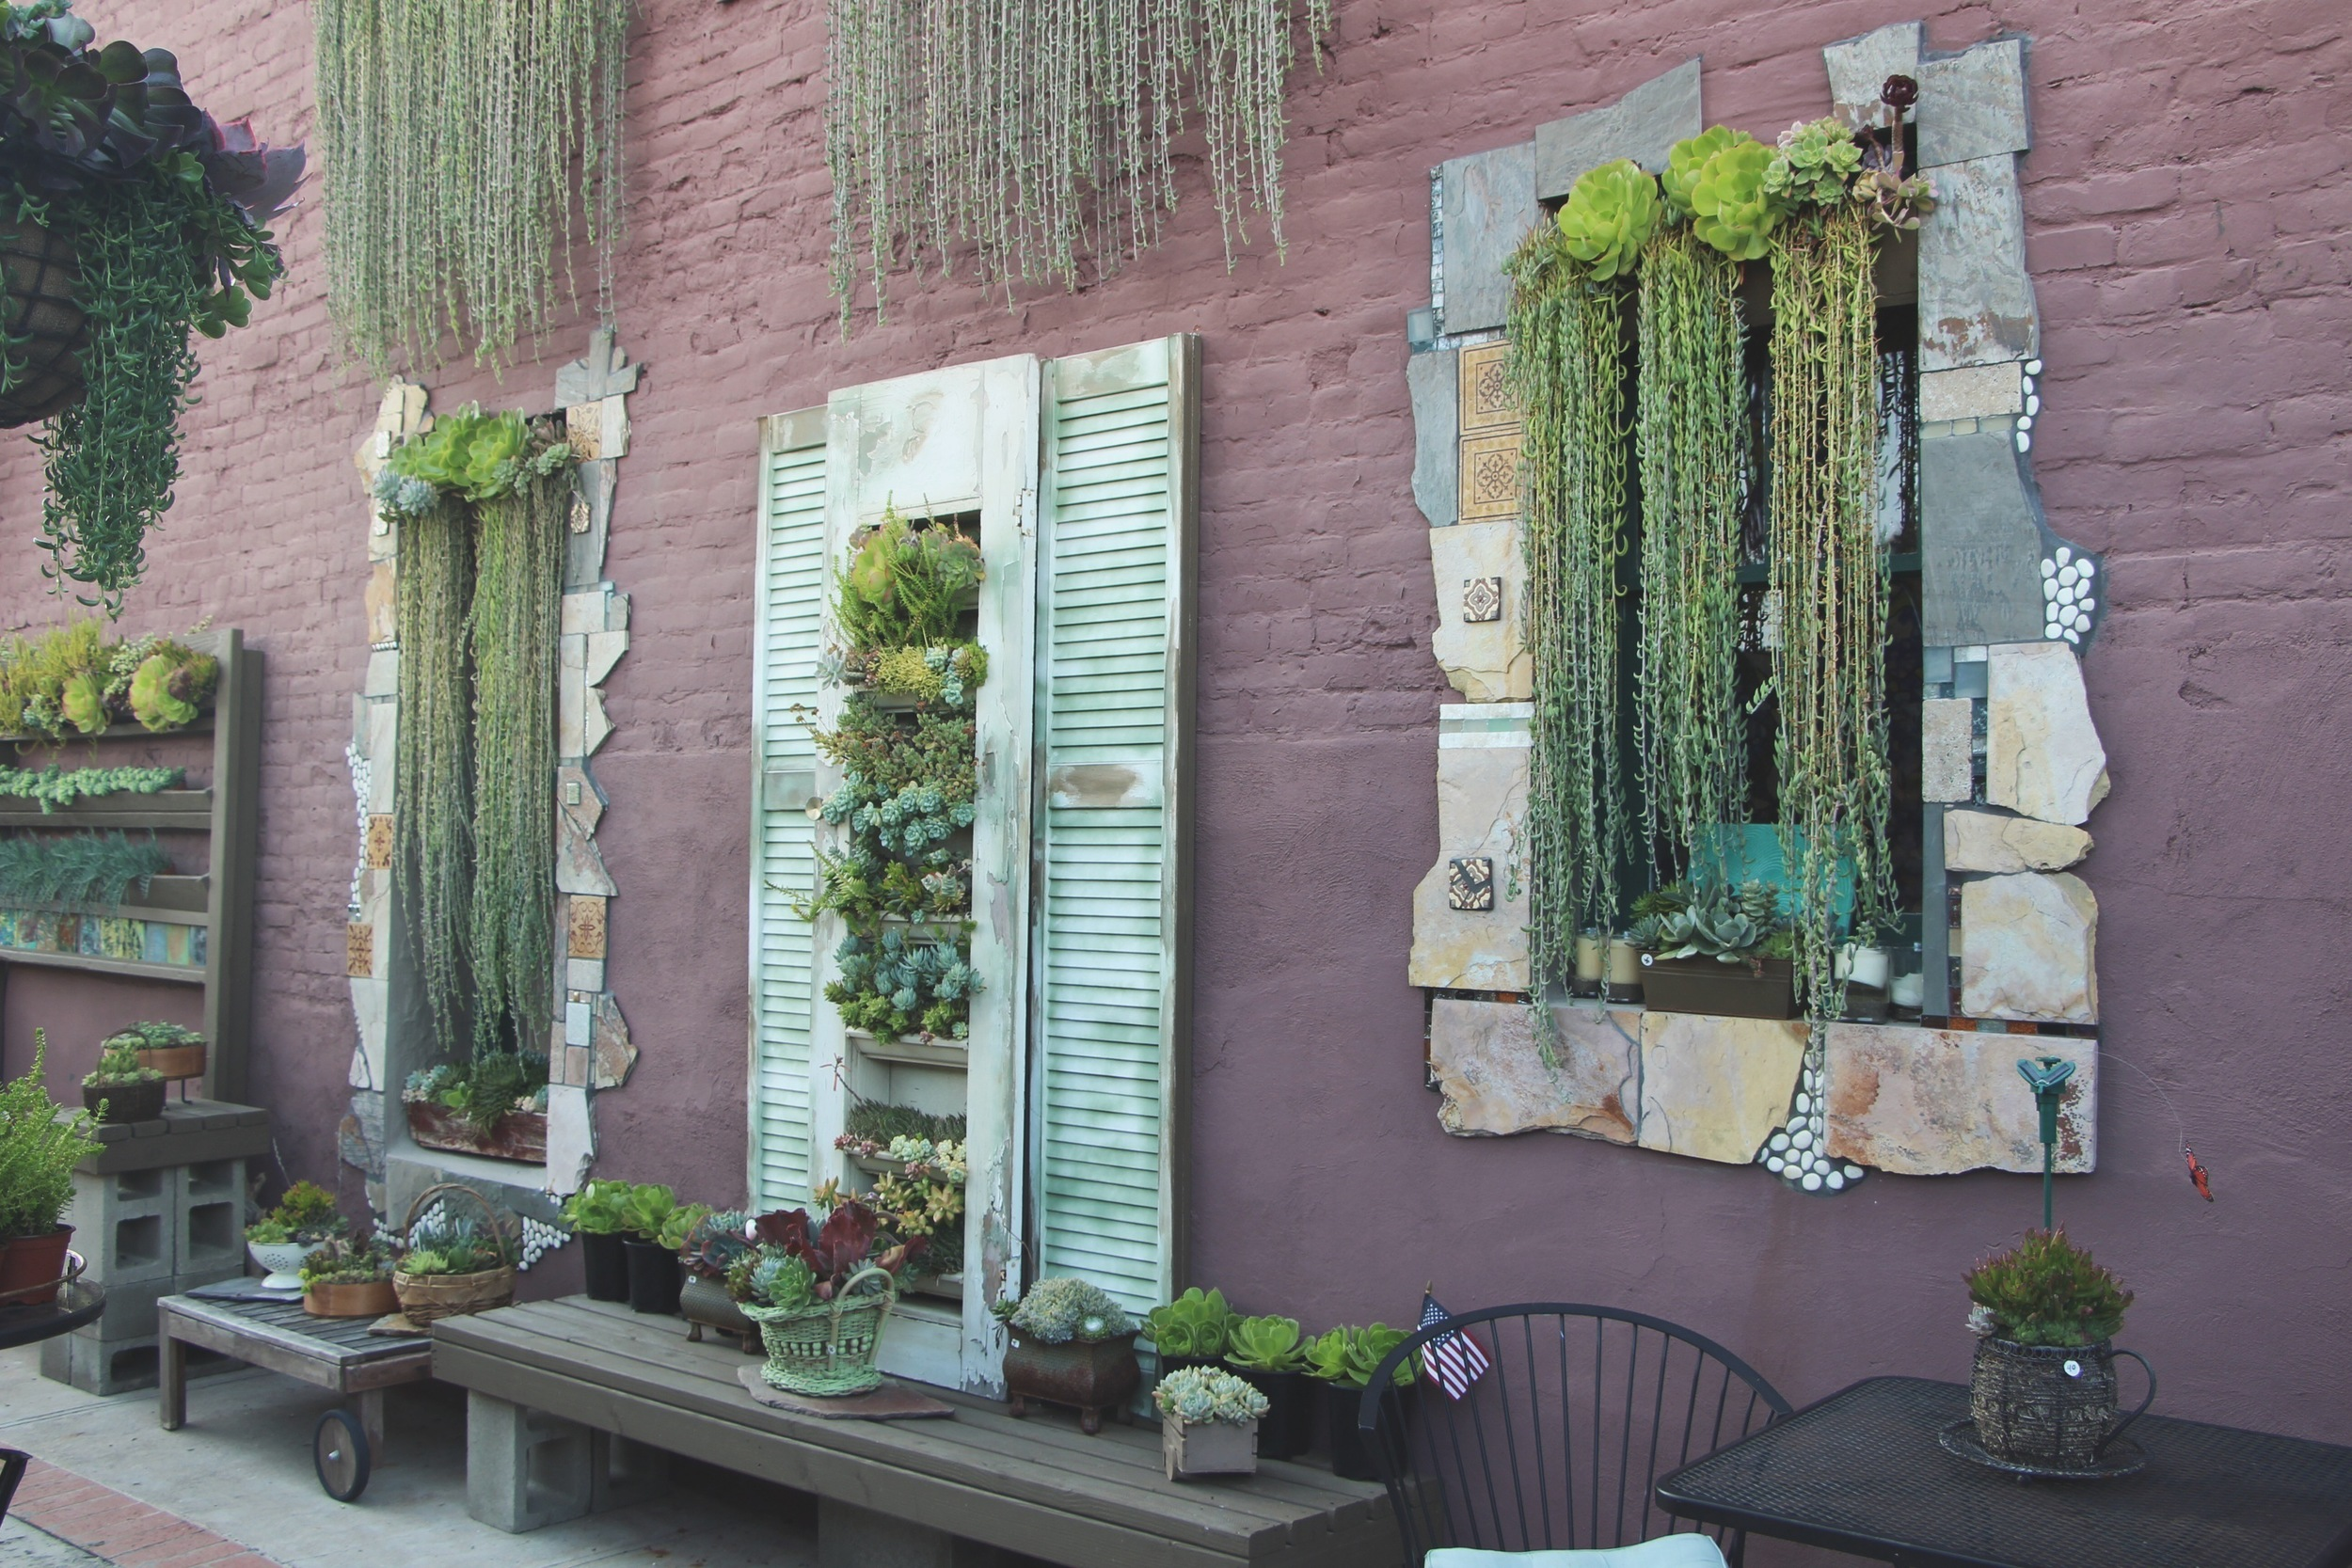 Vertical Succulent Wall Art at Succulent Cafe Oceanside via Needles + Leaves